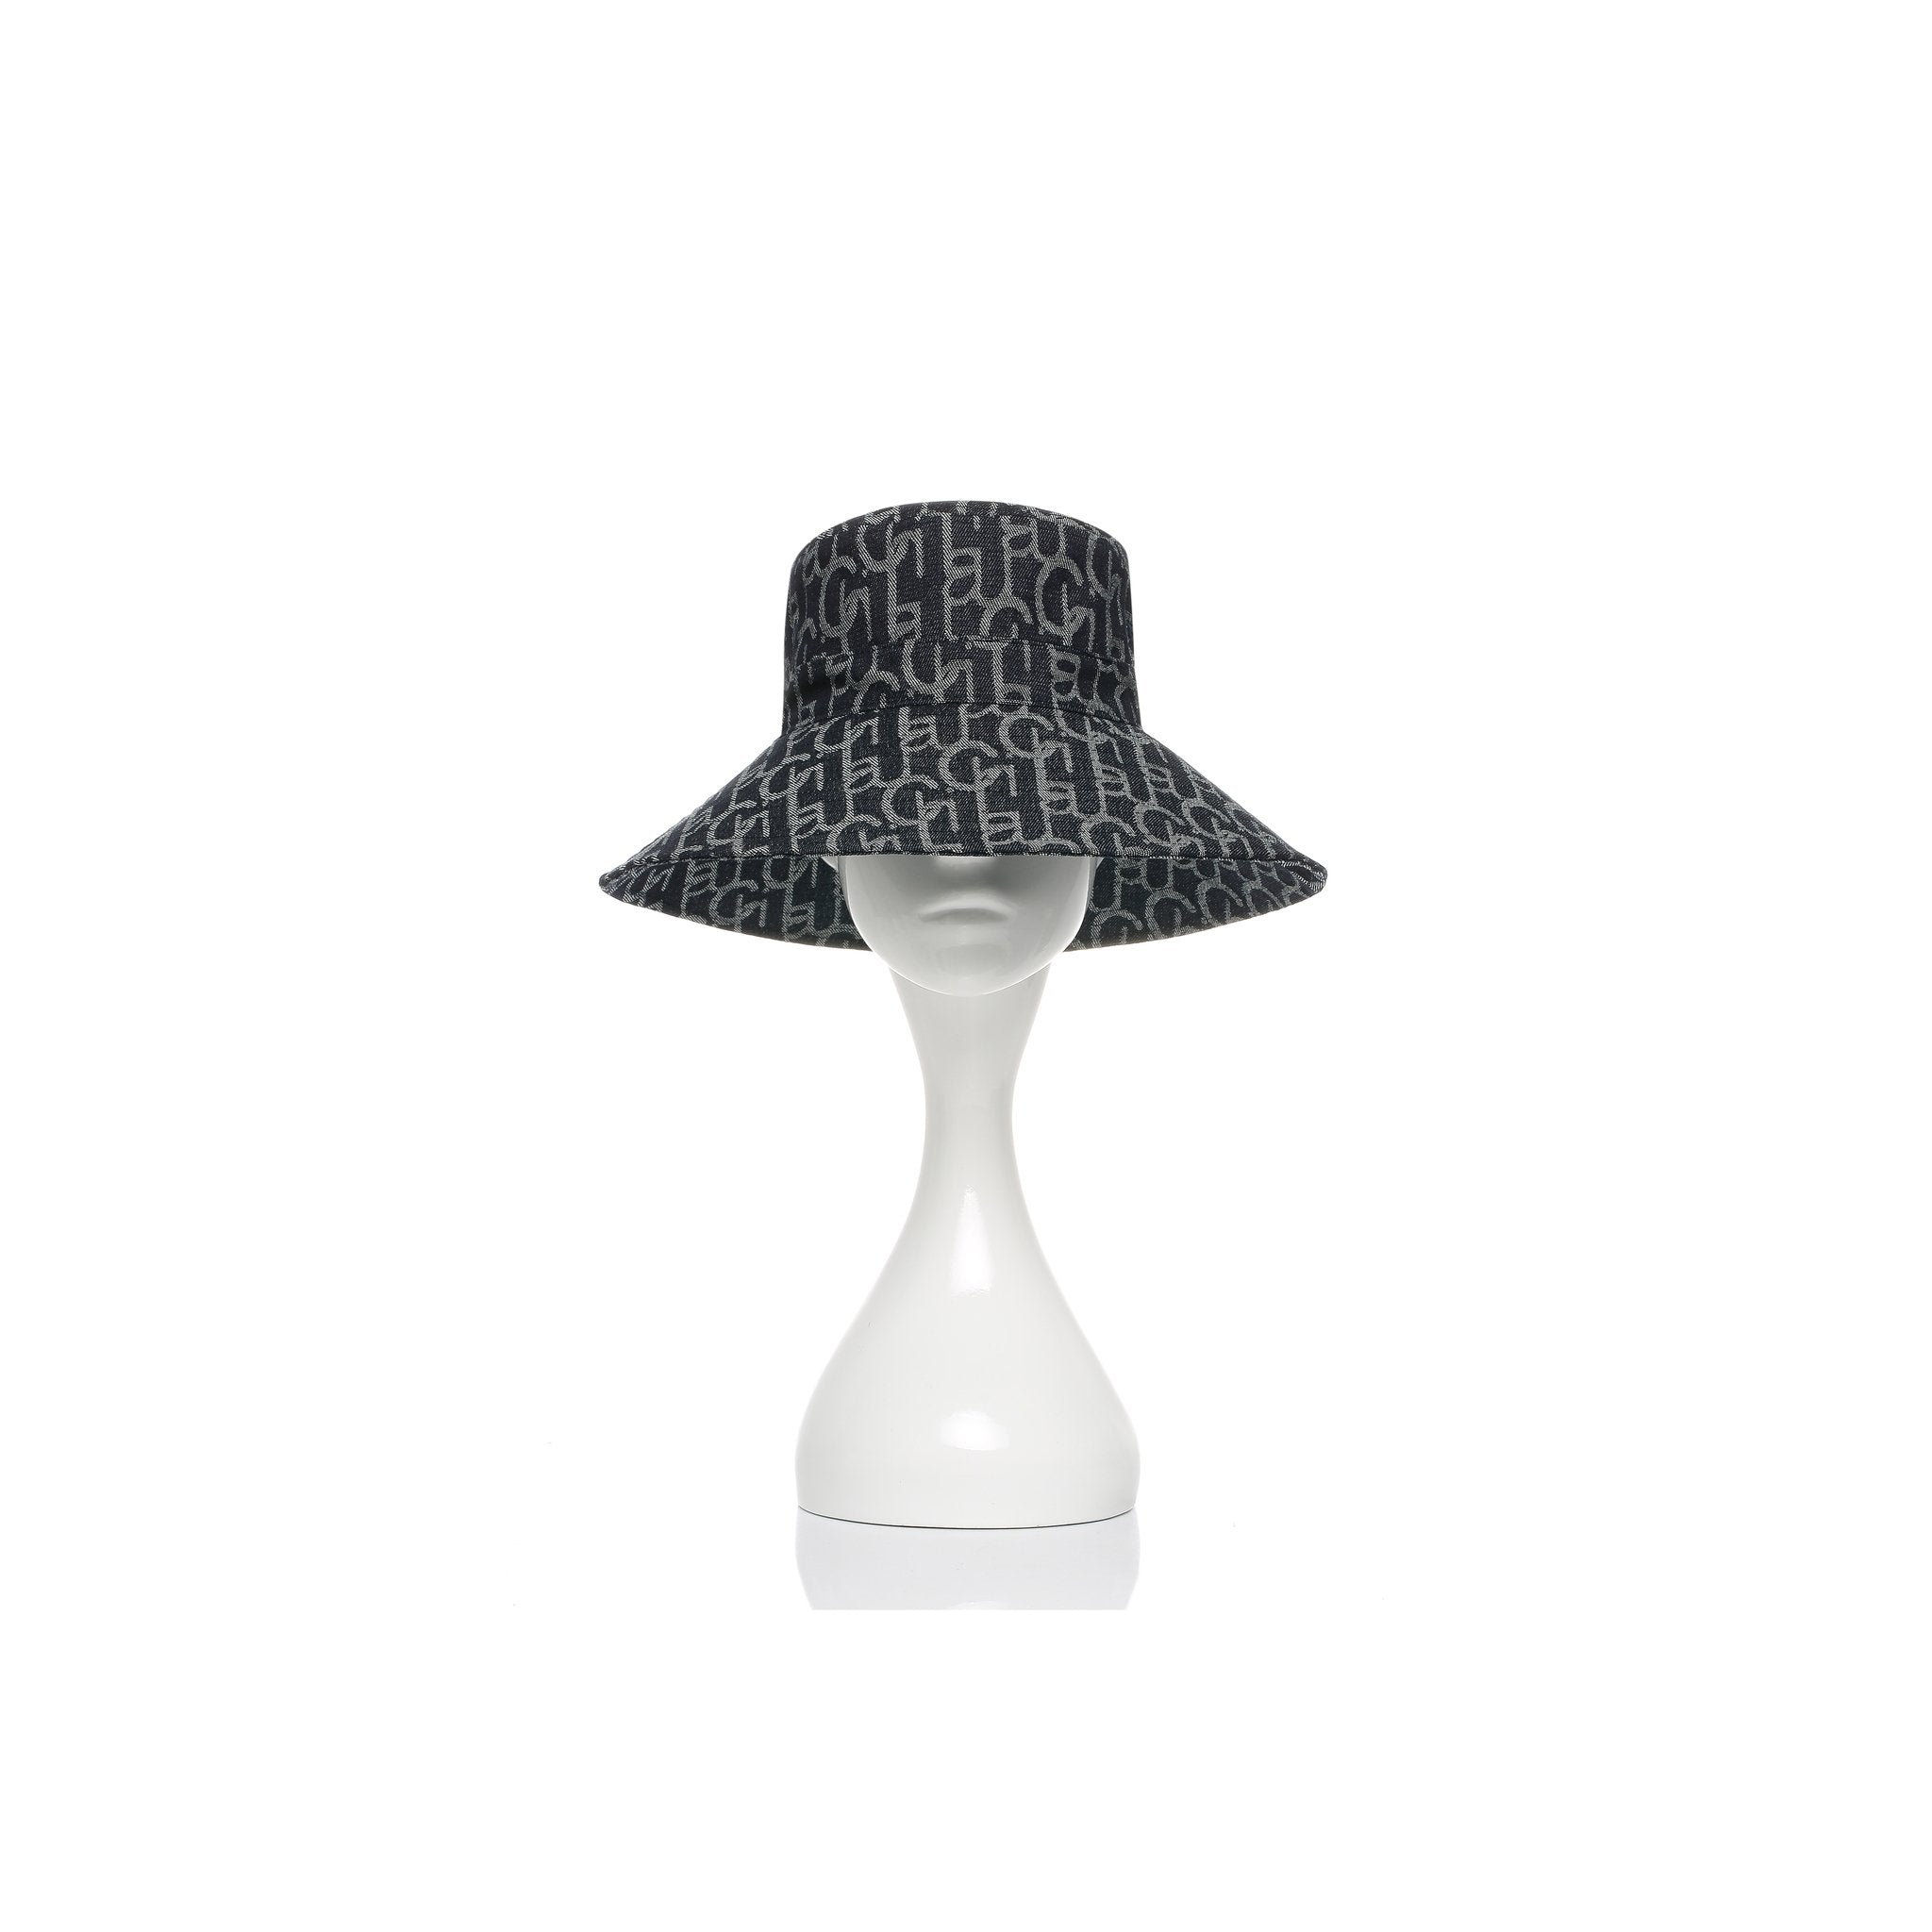 Laurence & Chico Chichi Laulau Denim Bucket Hat | MADA IN CHINA